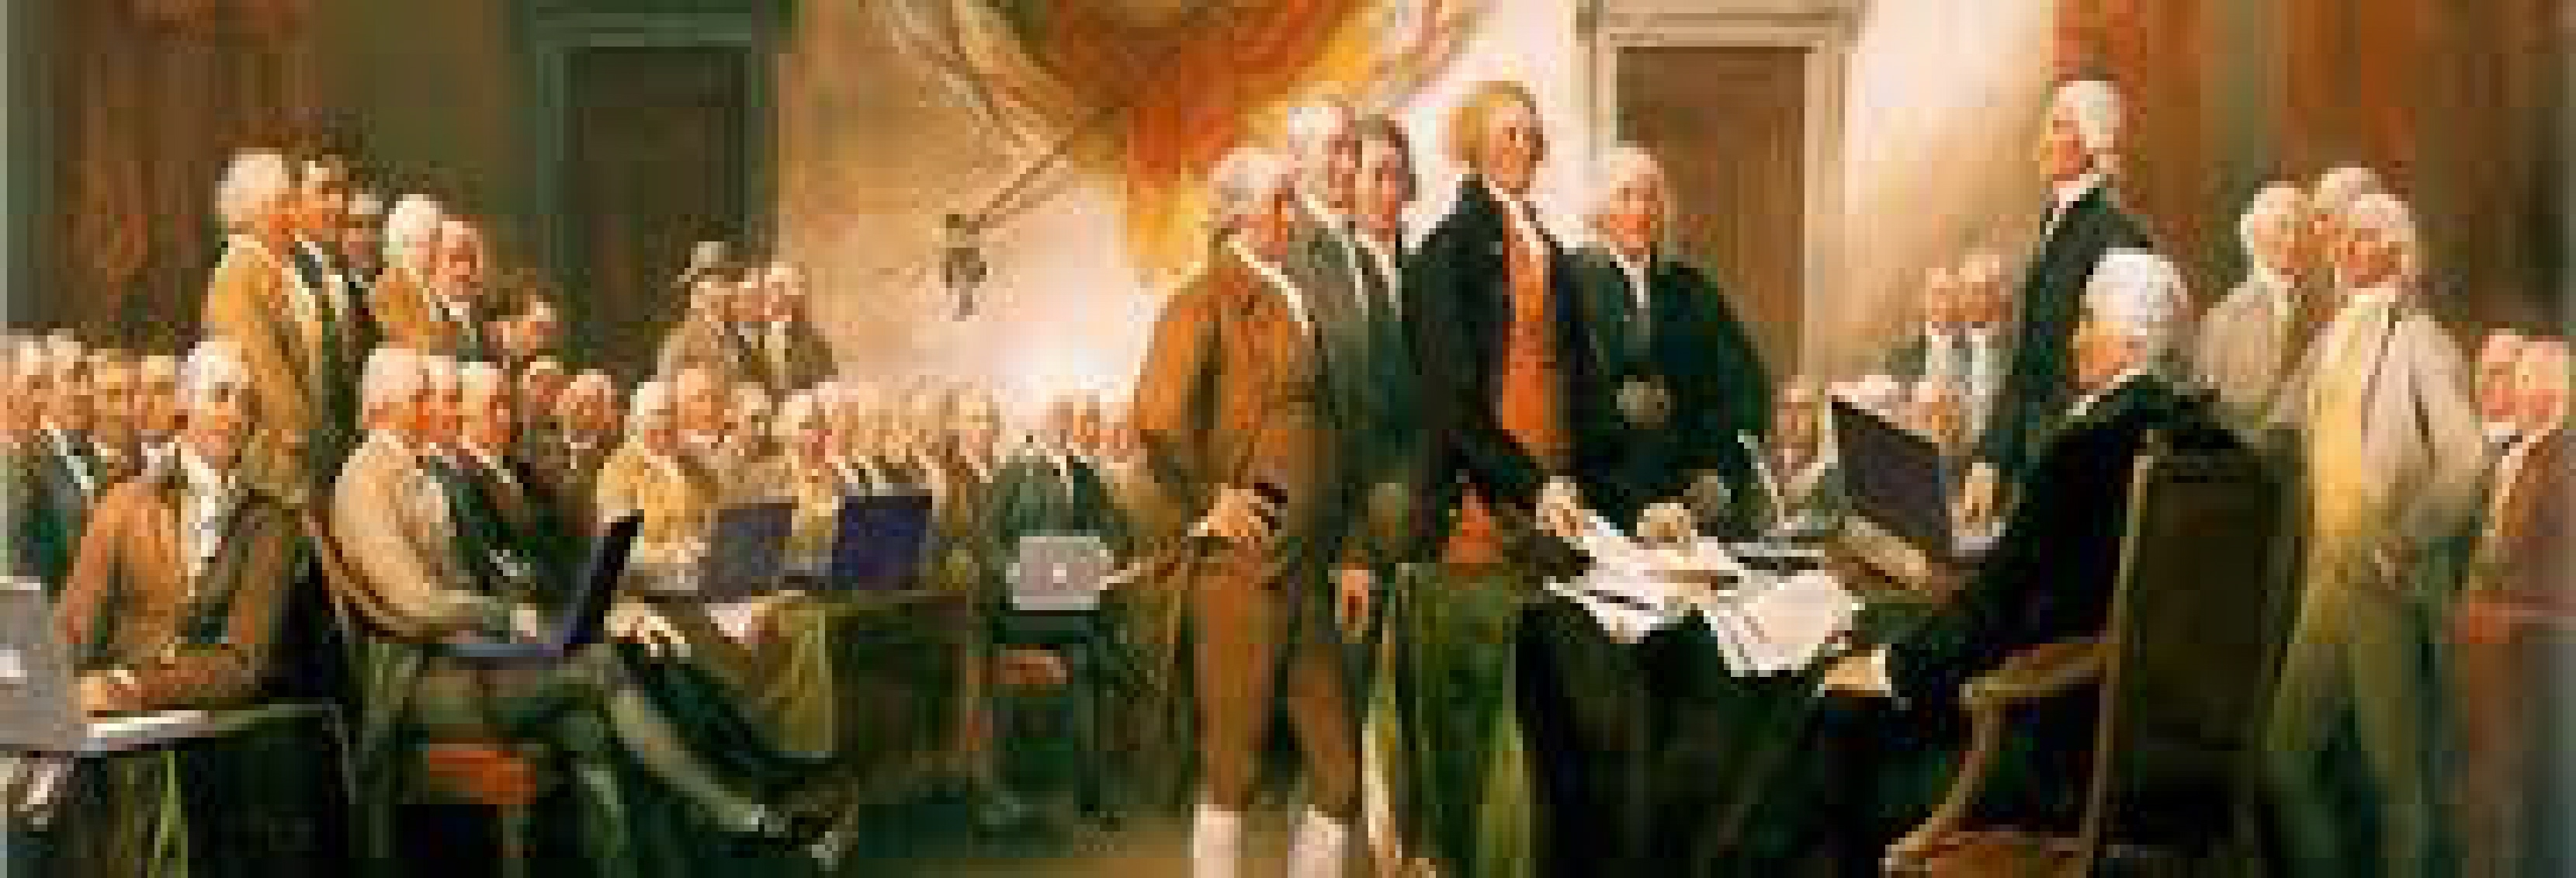 the thoughts of the founding fathers of america 10 quotes the founding fathers  false quotes about washington's thoughts on christianity  greatest enemies we have to the happiness of america.